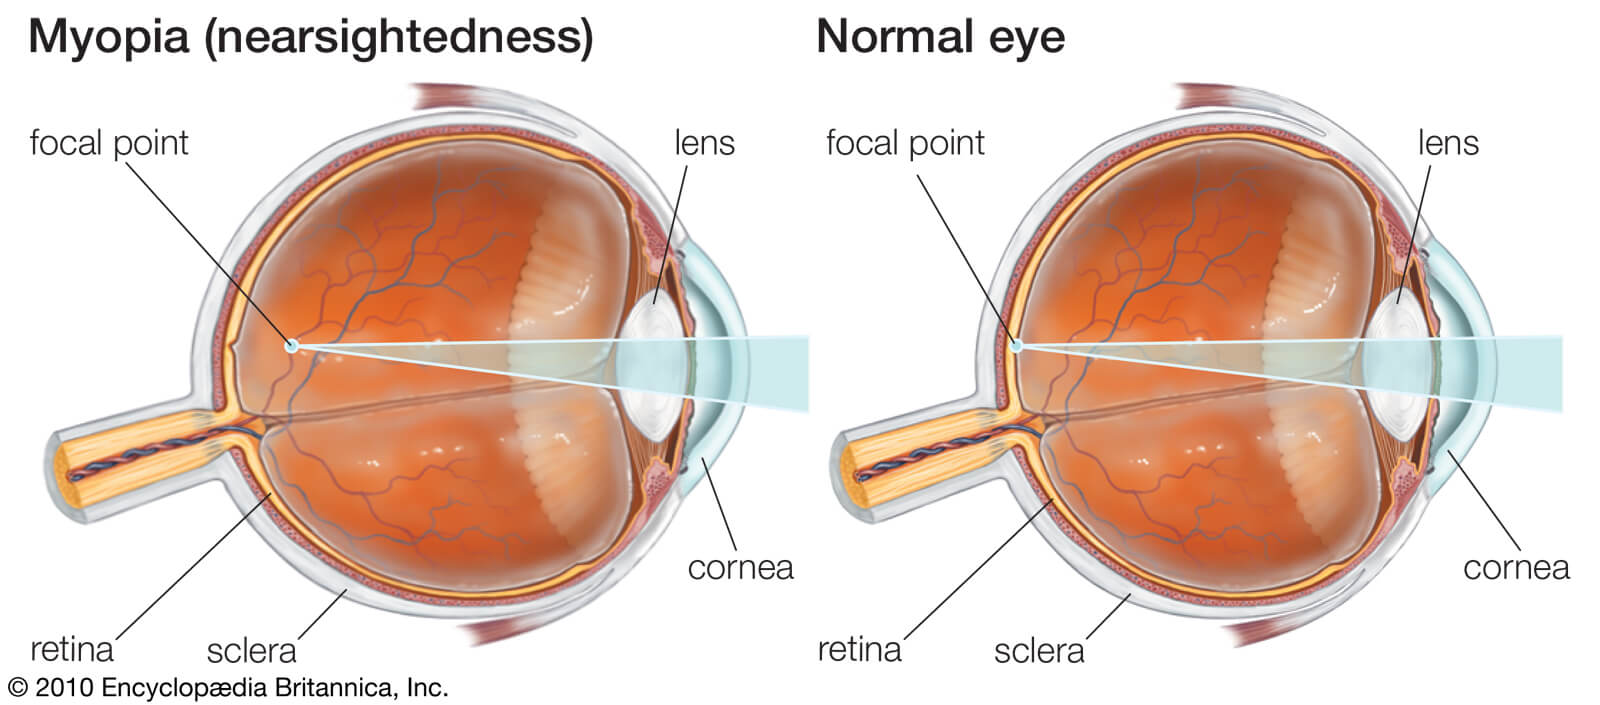 nearsightedness glasses Myopia lenses focus eye objects